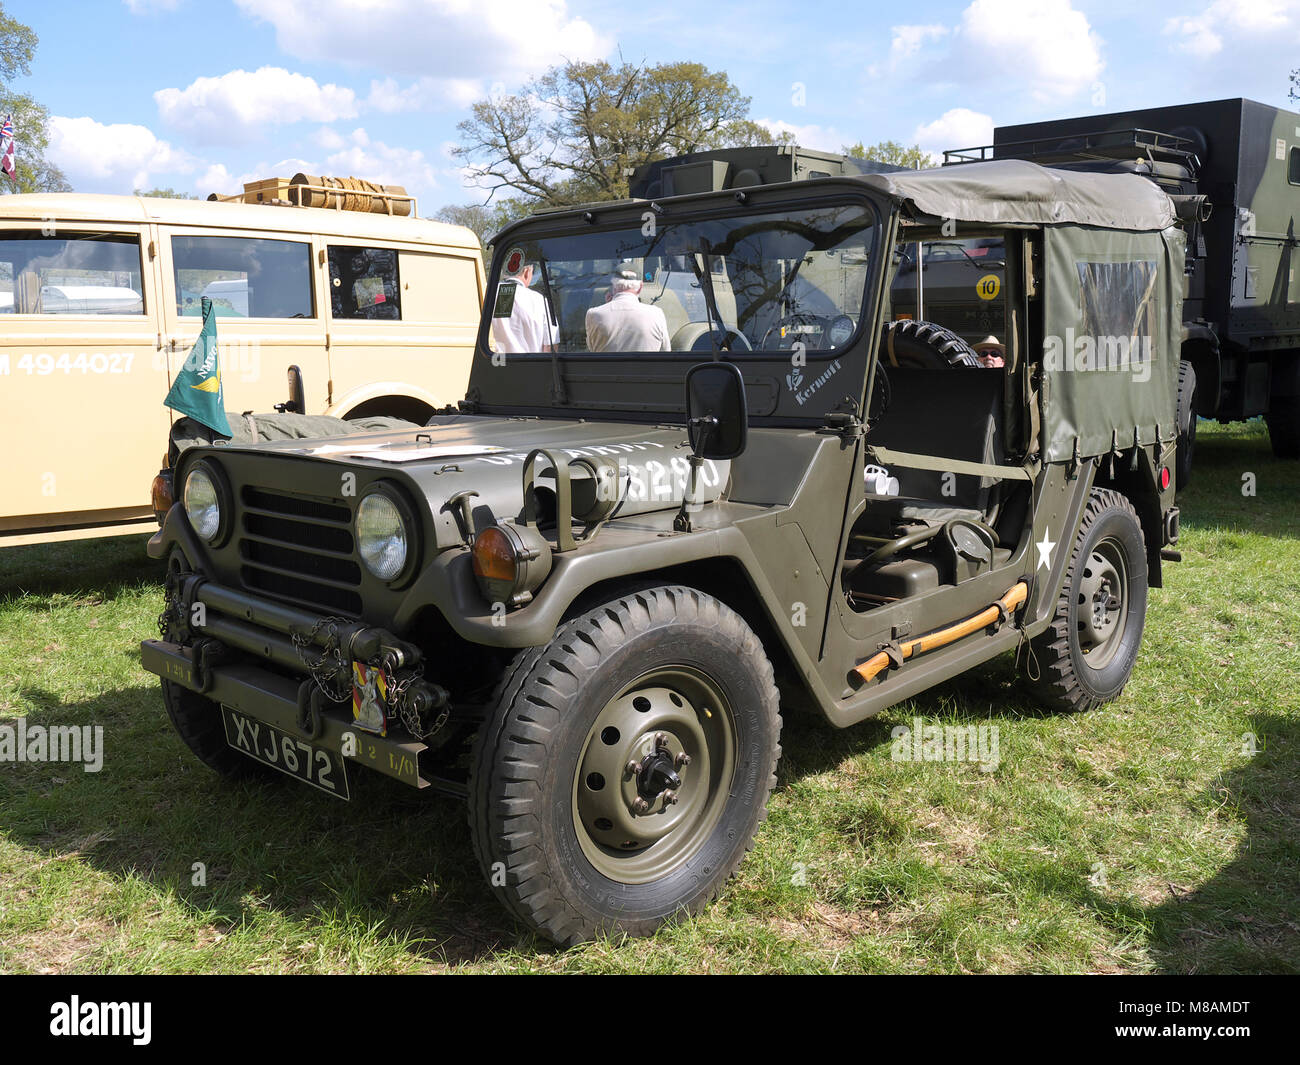 Vintage jeep stradsett rally, Norfolk - Stock Image